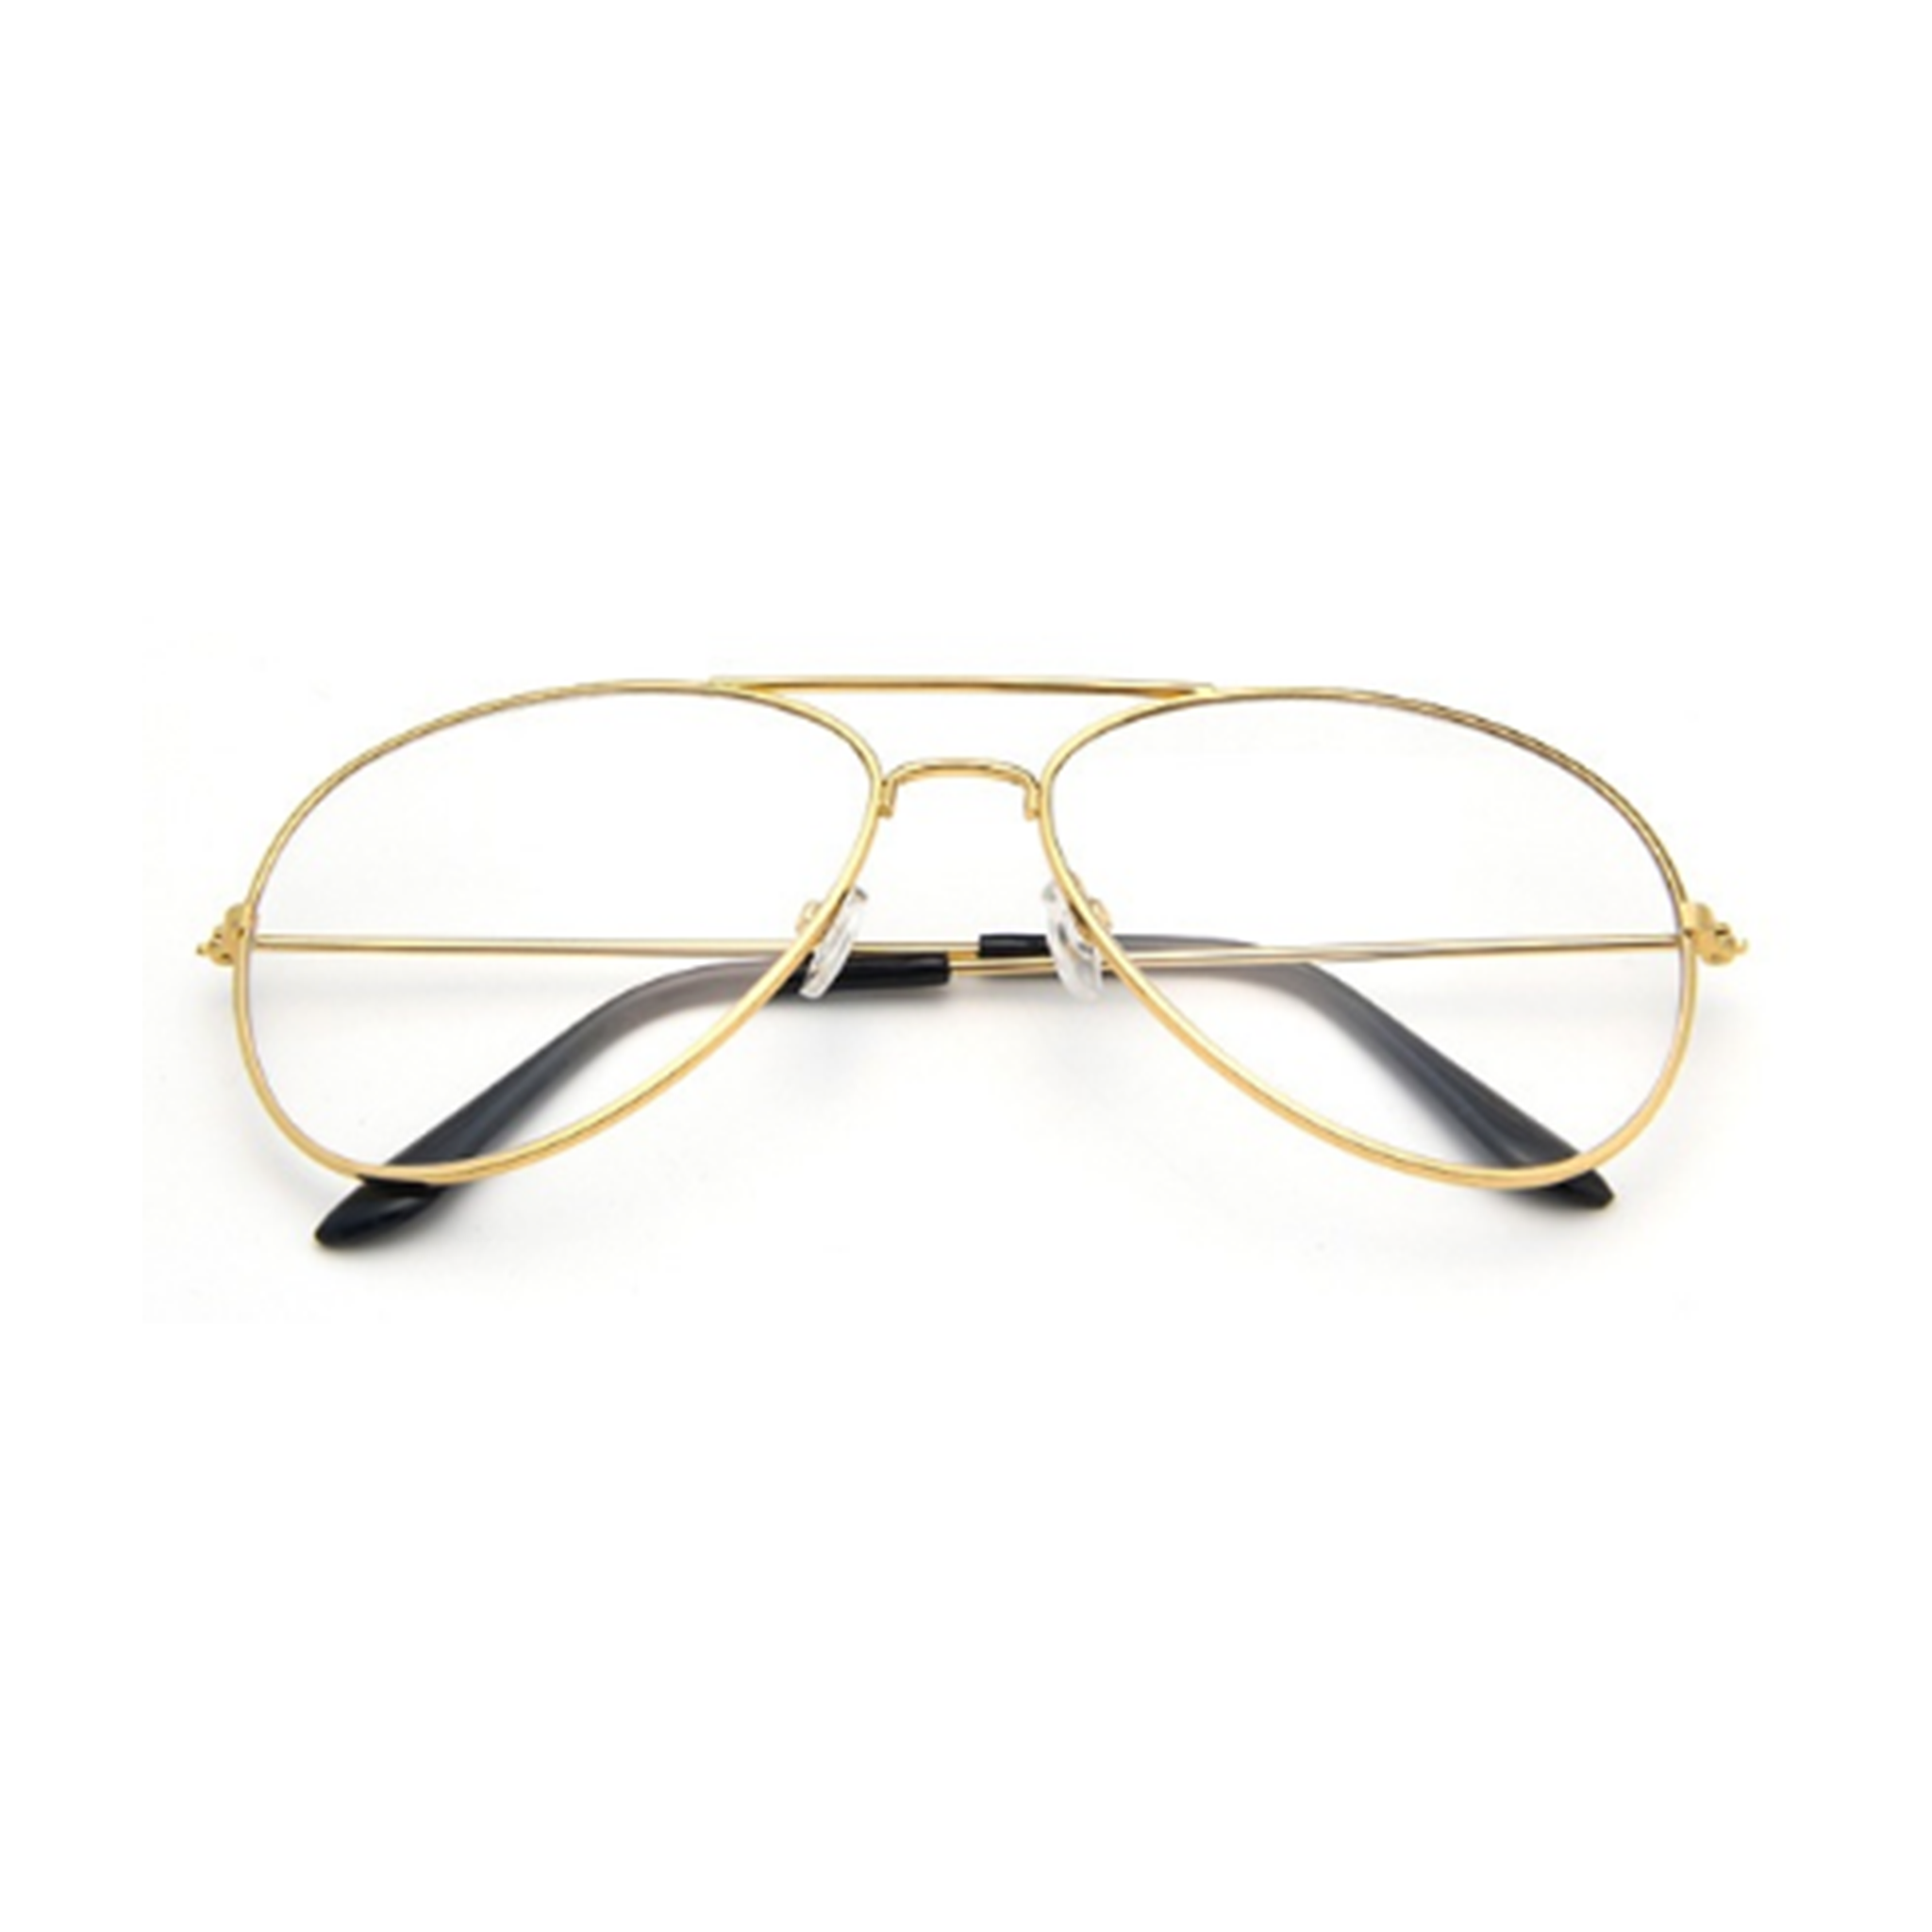 Gold Aviators With Clear Lenses By INDY Sunglasses.